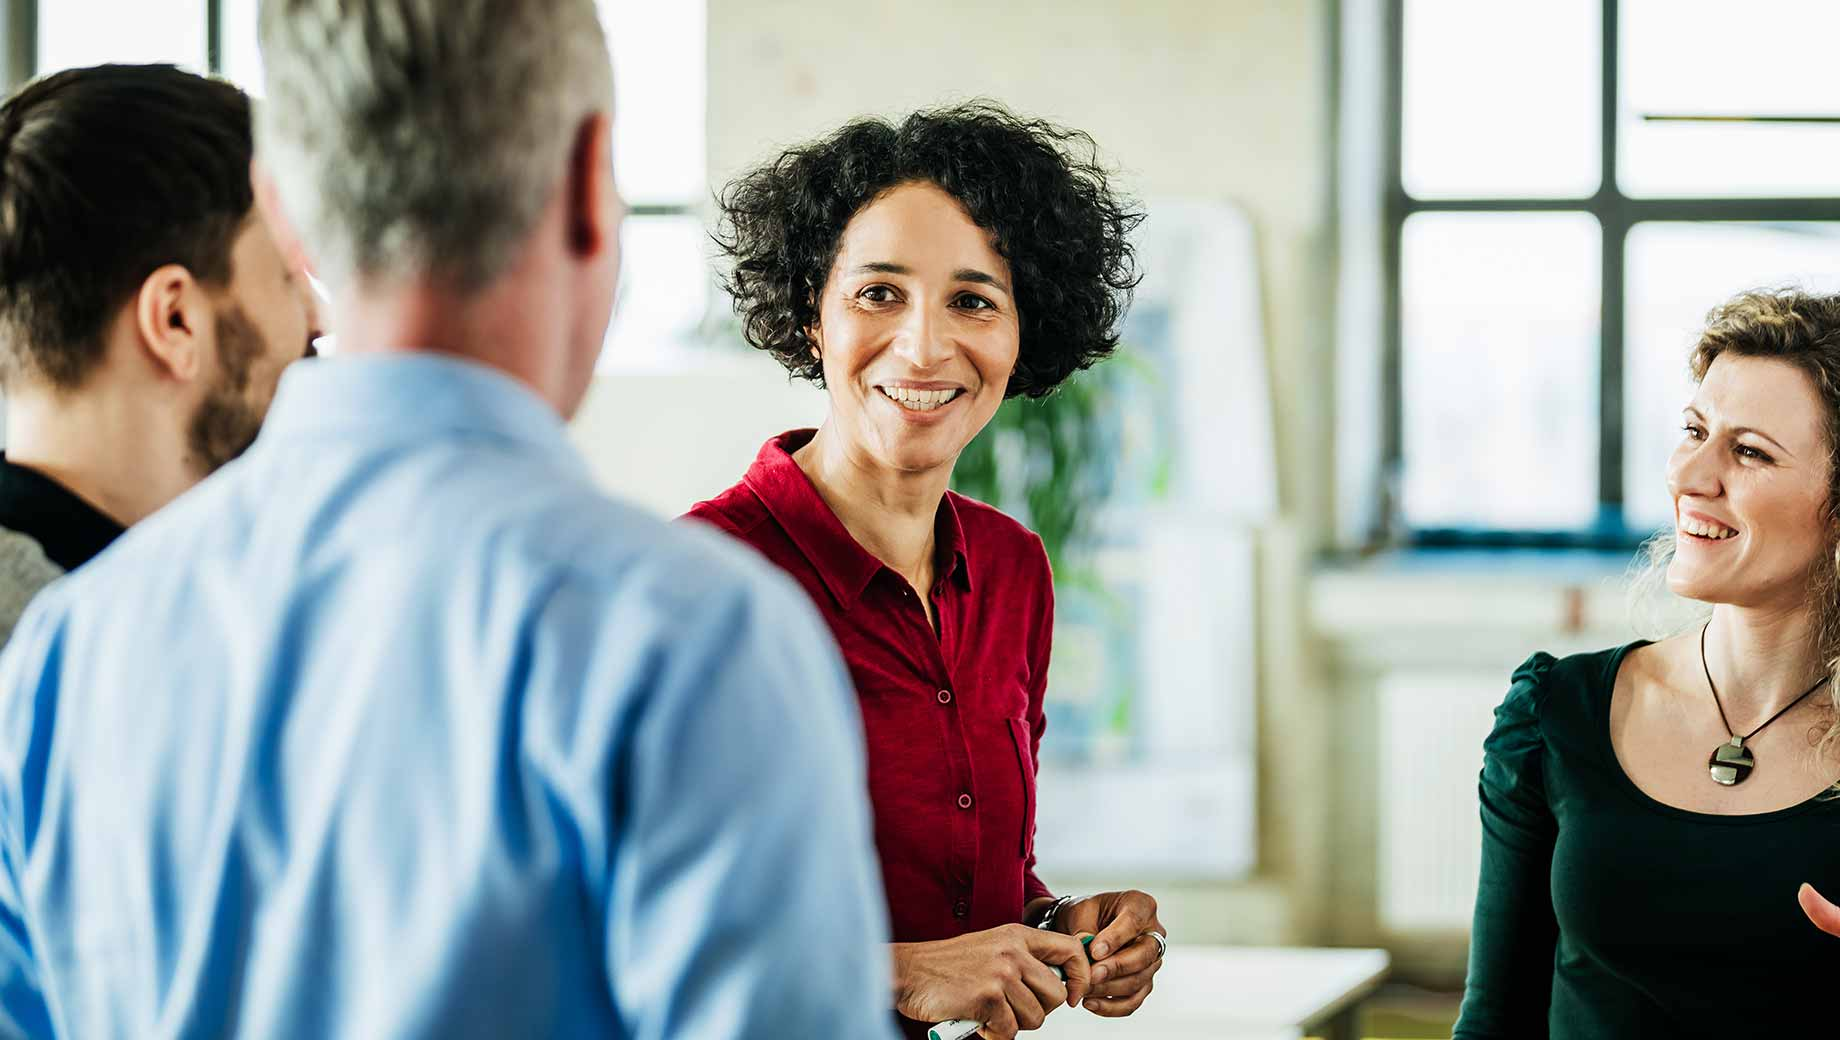 How to understand others people's speaking better